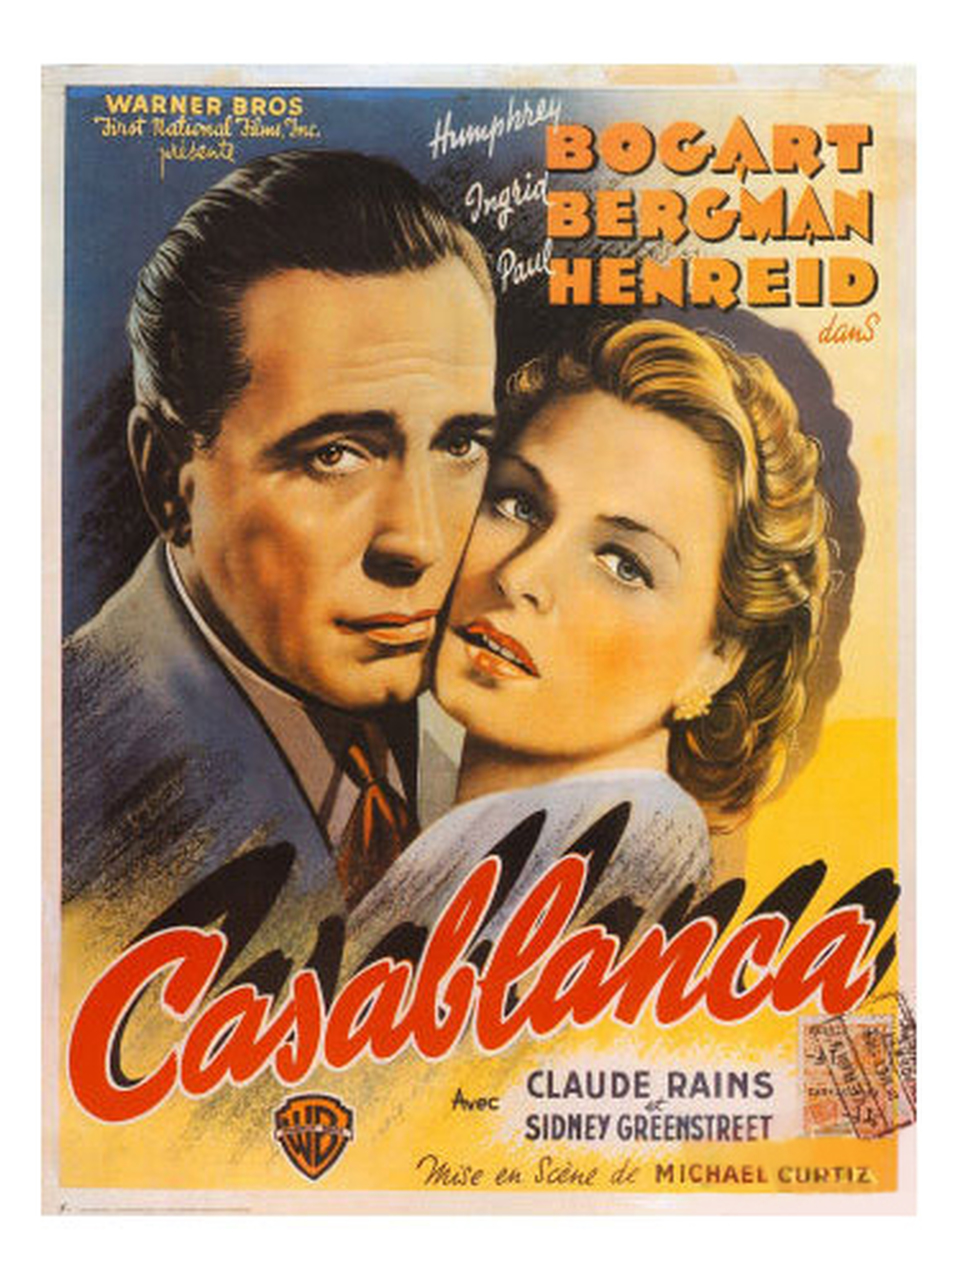 Casablanca (1942) - Directed By: Michael CurtizStarring: Humphrey Bogart, Ingrid Bergman, Paul Henreid, Claude Rains, Conrad Veidt, Peter LorreRated: PGRun Time: 1h 42mTMM Score: 5 StarsStrengths: Cinematography, Acting, LightingWeakness: Nothing